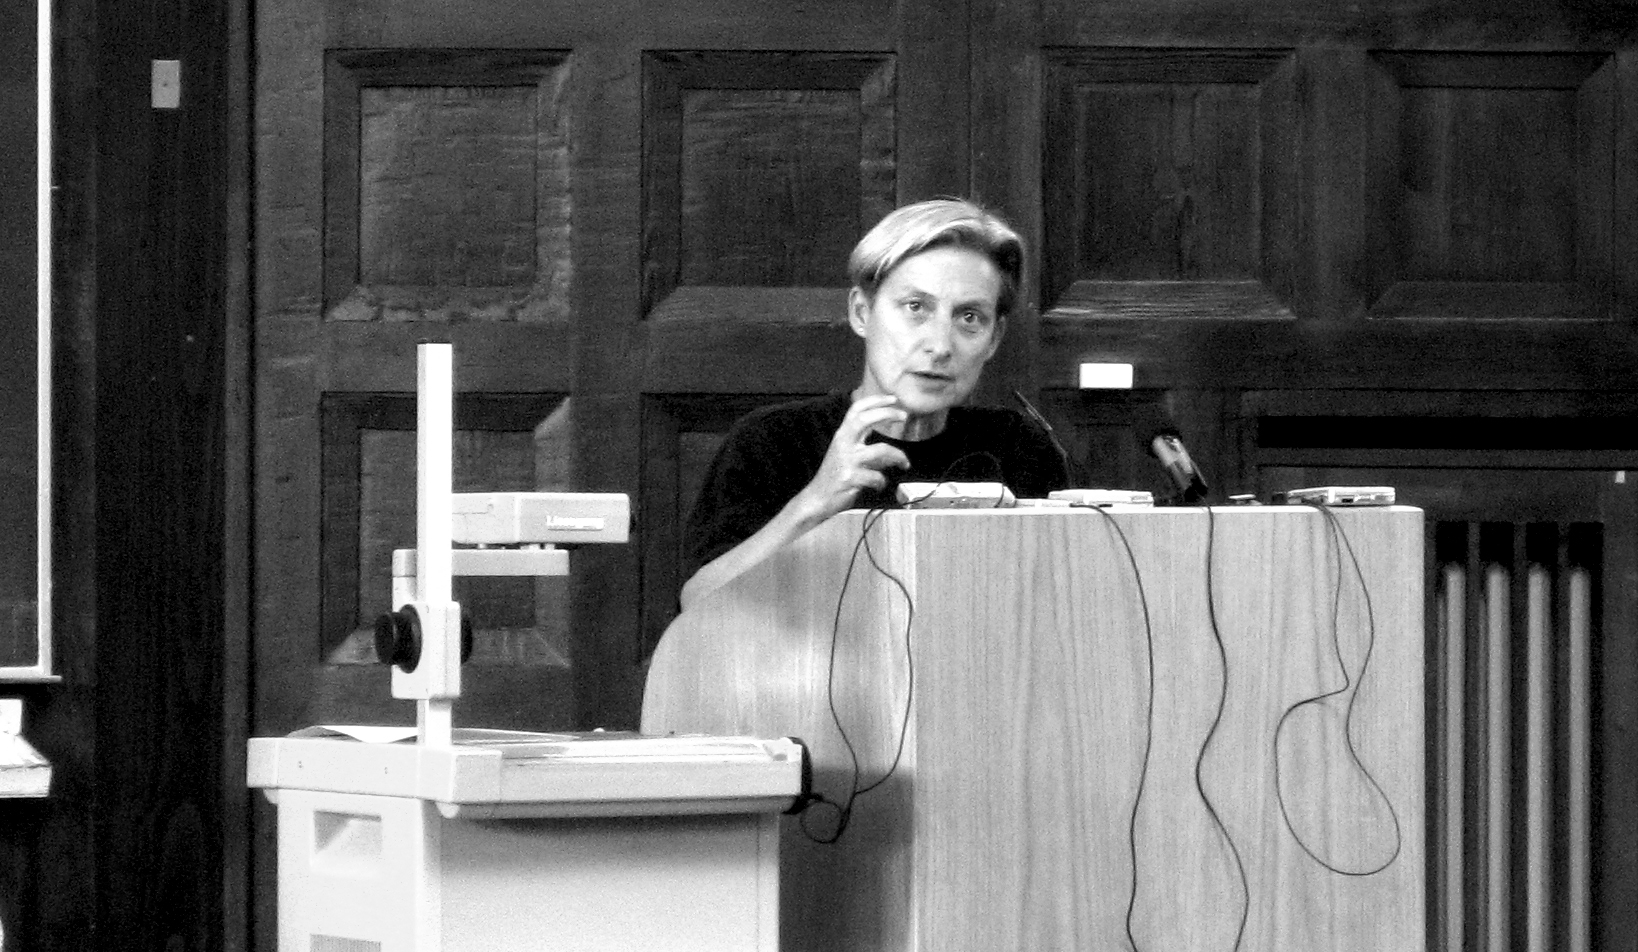 judith butler in media studies Working closely with judith butler's ideas of gender performance and jacques  lacan's concept of the mirror stage, i focus on the evaluation of if and how, in its.